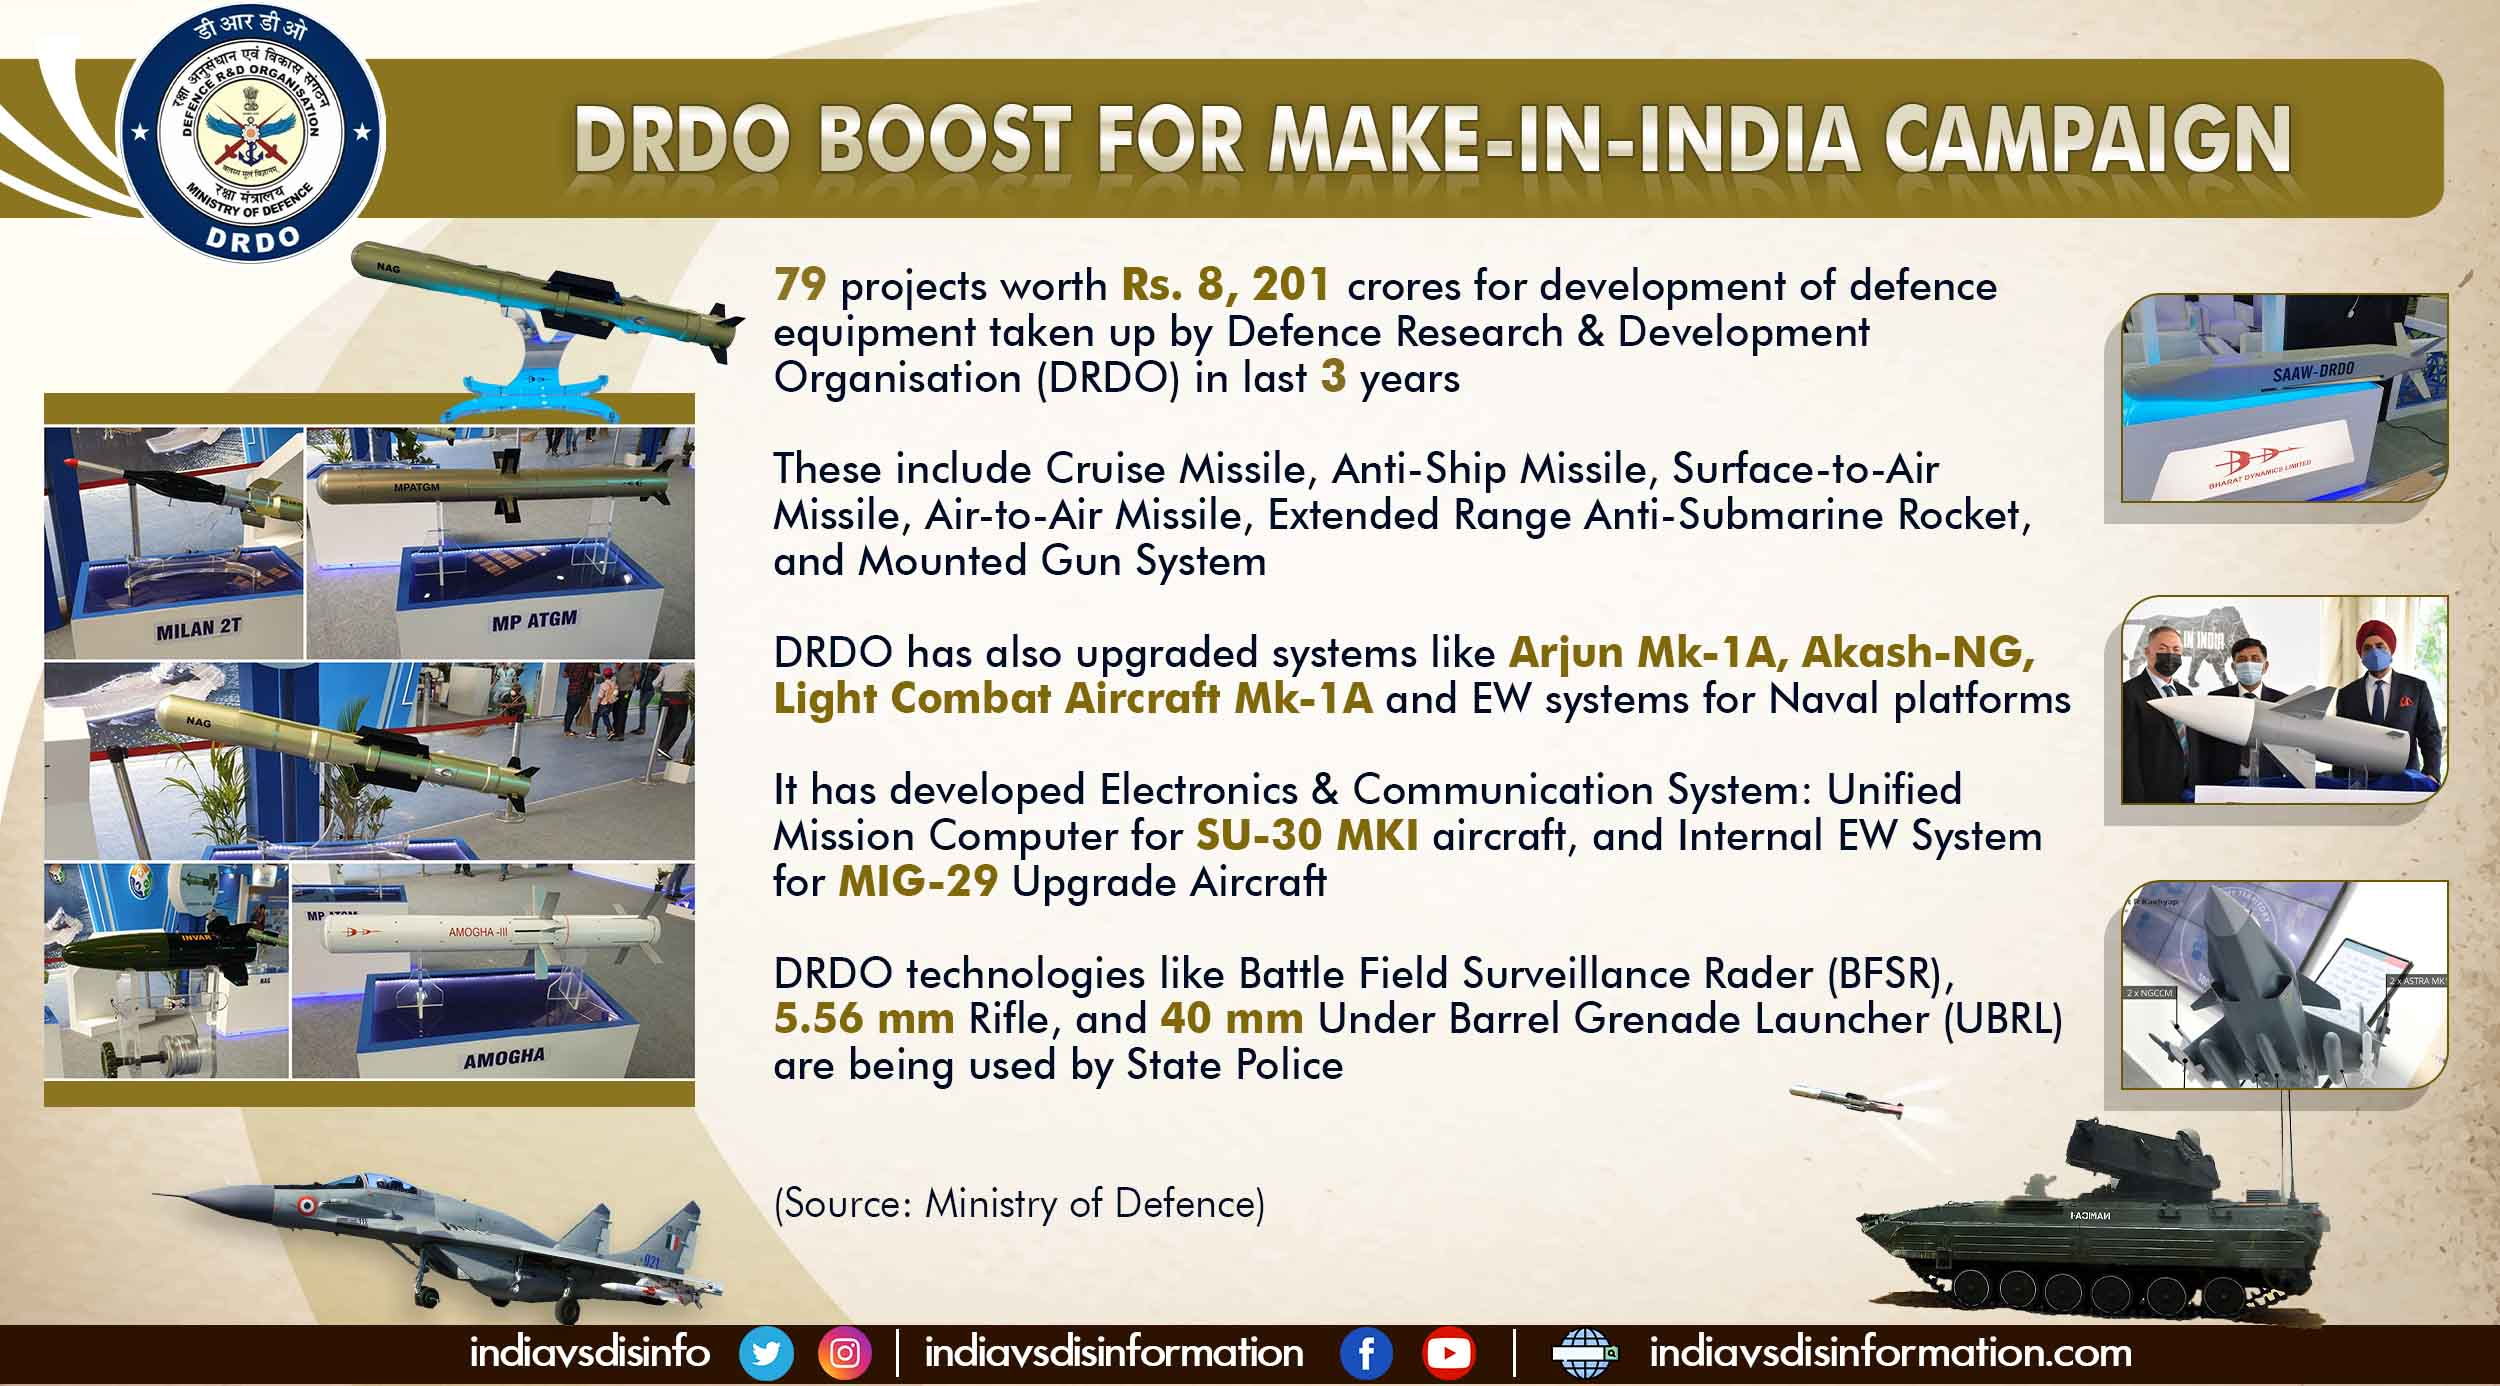 DRDO takes up 79 defence equipment projects in 3 years